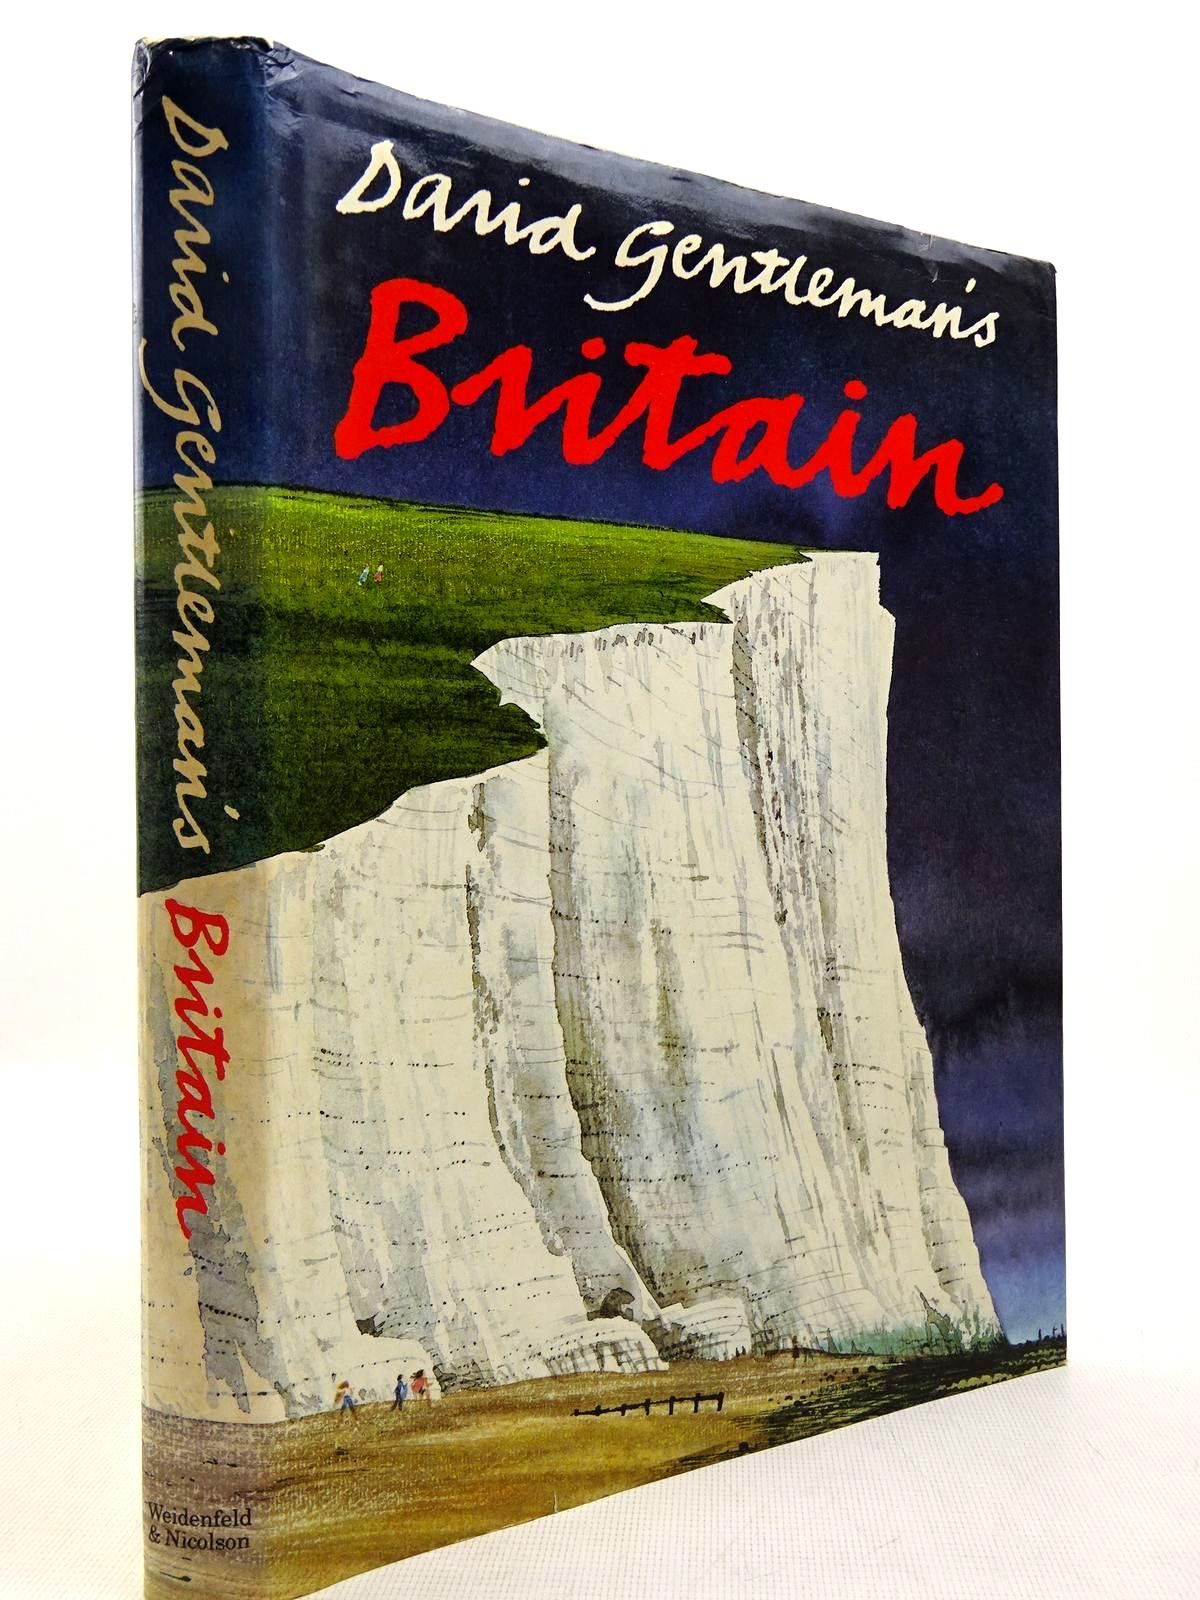 Photo of DAVID GENTLEMAN'S BRITAIN written by Gentleman, David illustrated by Gentleman, David published by Weidenfeld and Nicolson (STOCK CODE: 2129322)  for sale by Stella & Rose's Books